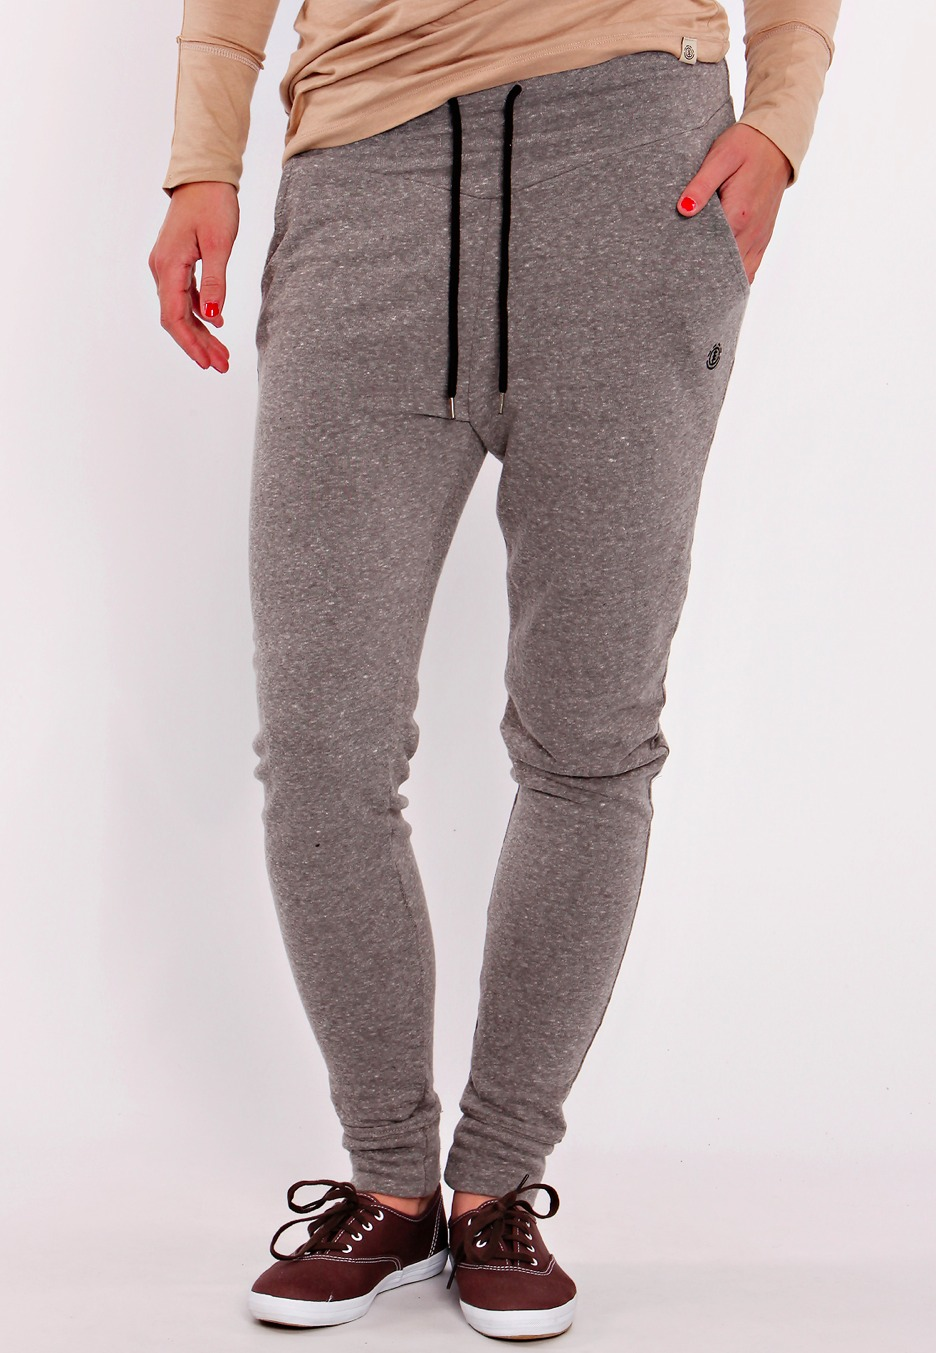 Find great deals on eBay for sweatpants girls. Shop with confidence.